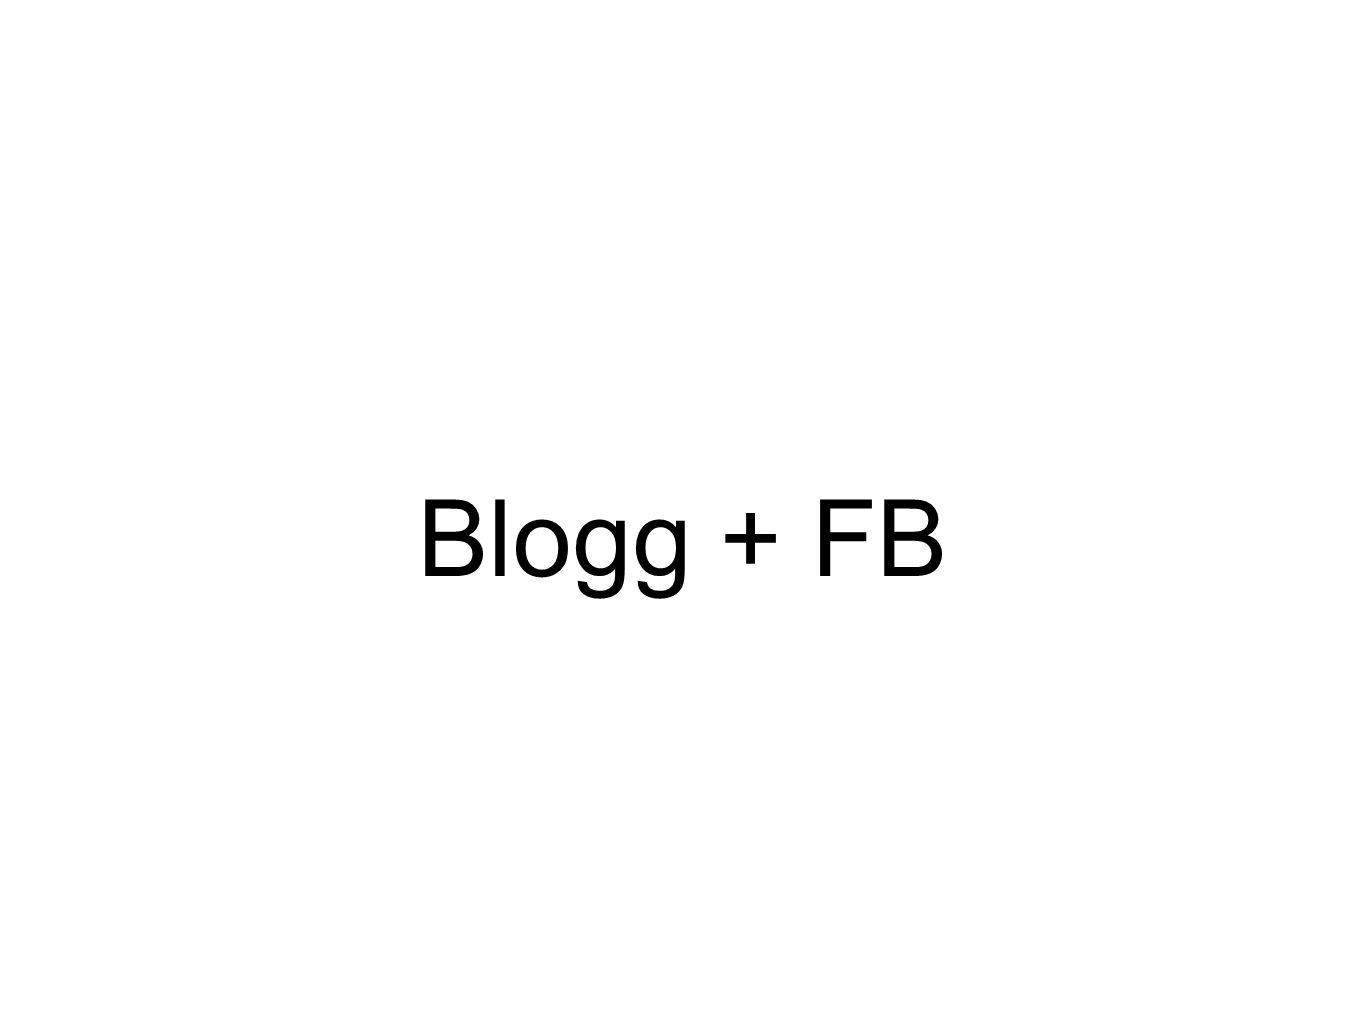 Blogg + FB